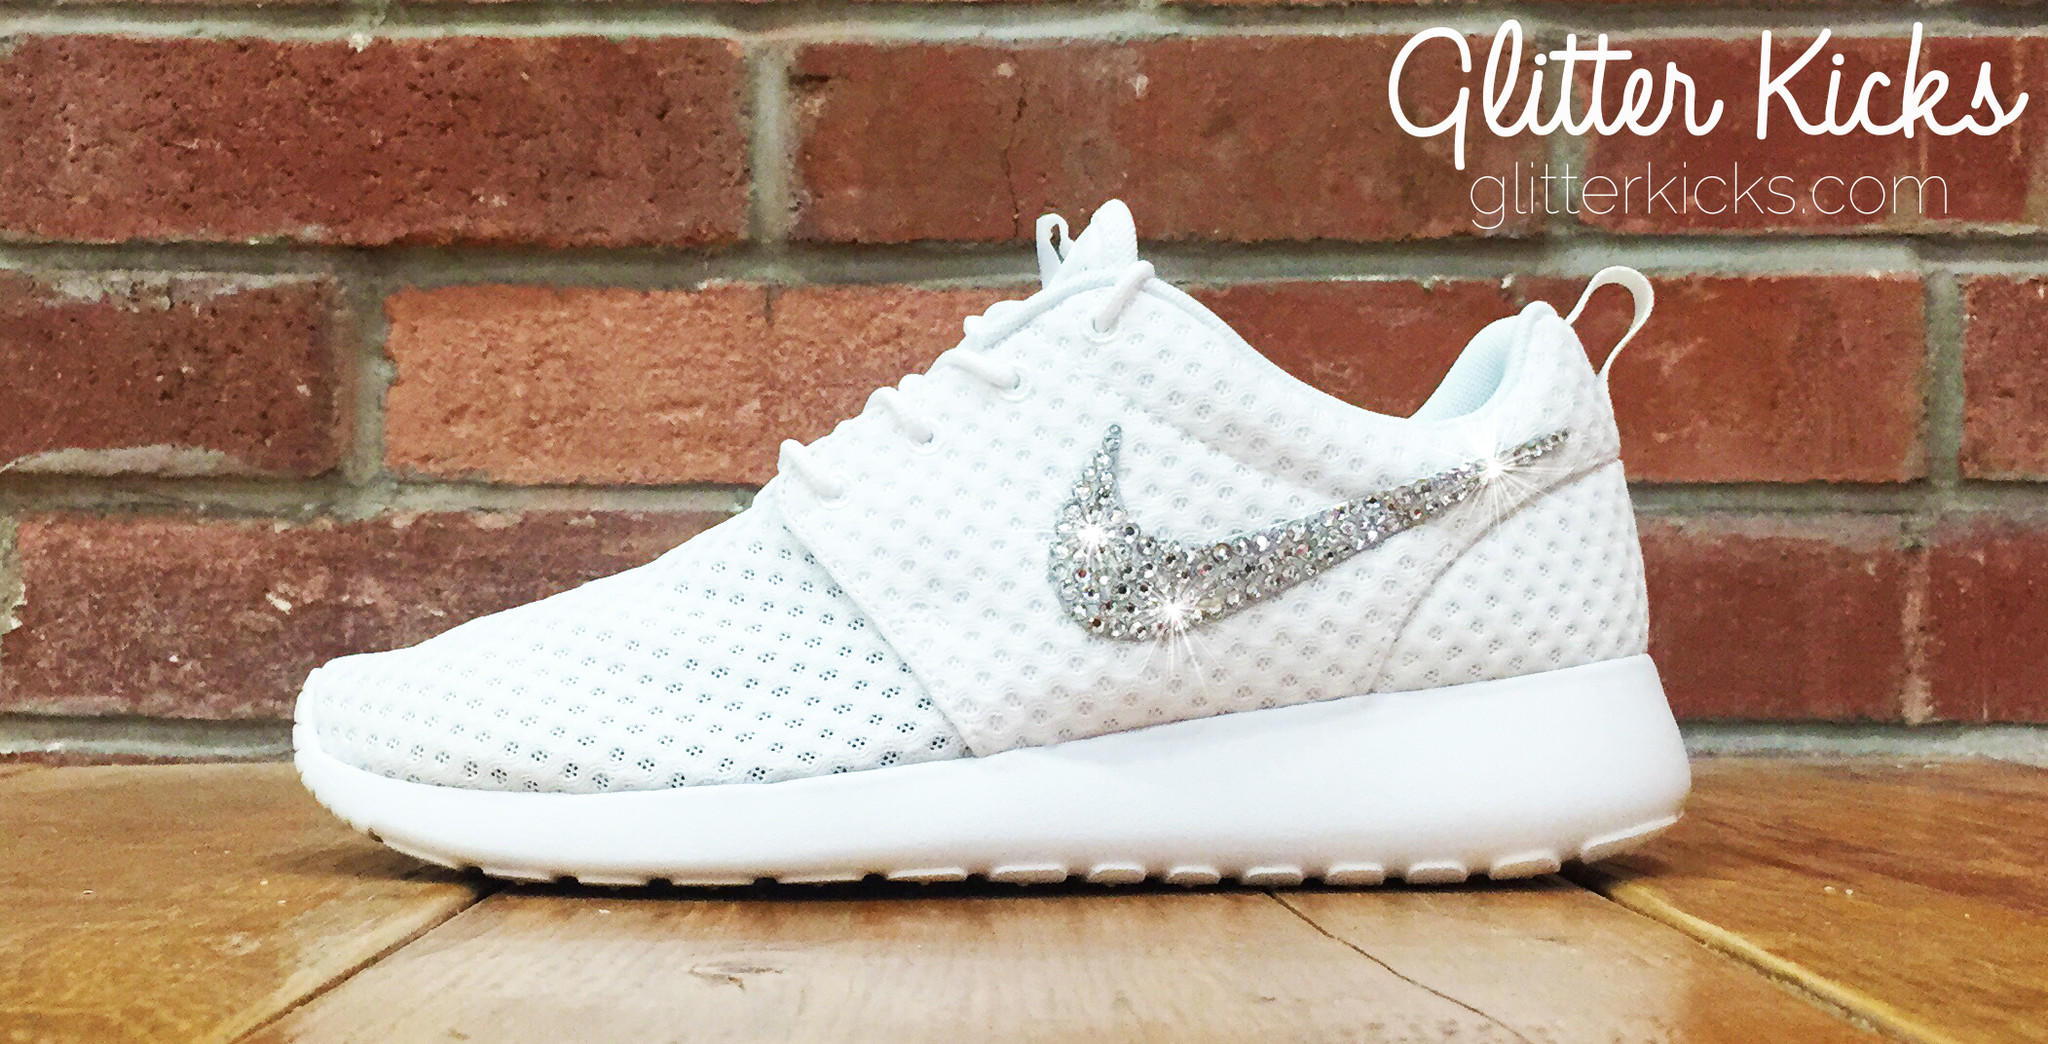 20370c8e3193 Women s Nike Roshe One Breeze Casual Shoes By Glitter Kicks - Customized  With Swarovski Elements Crystal